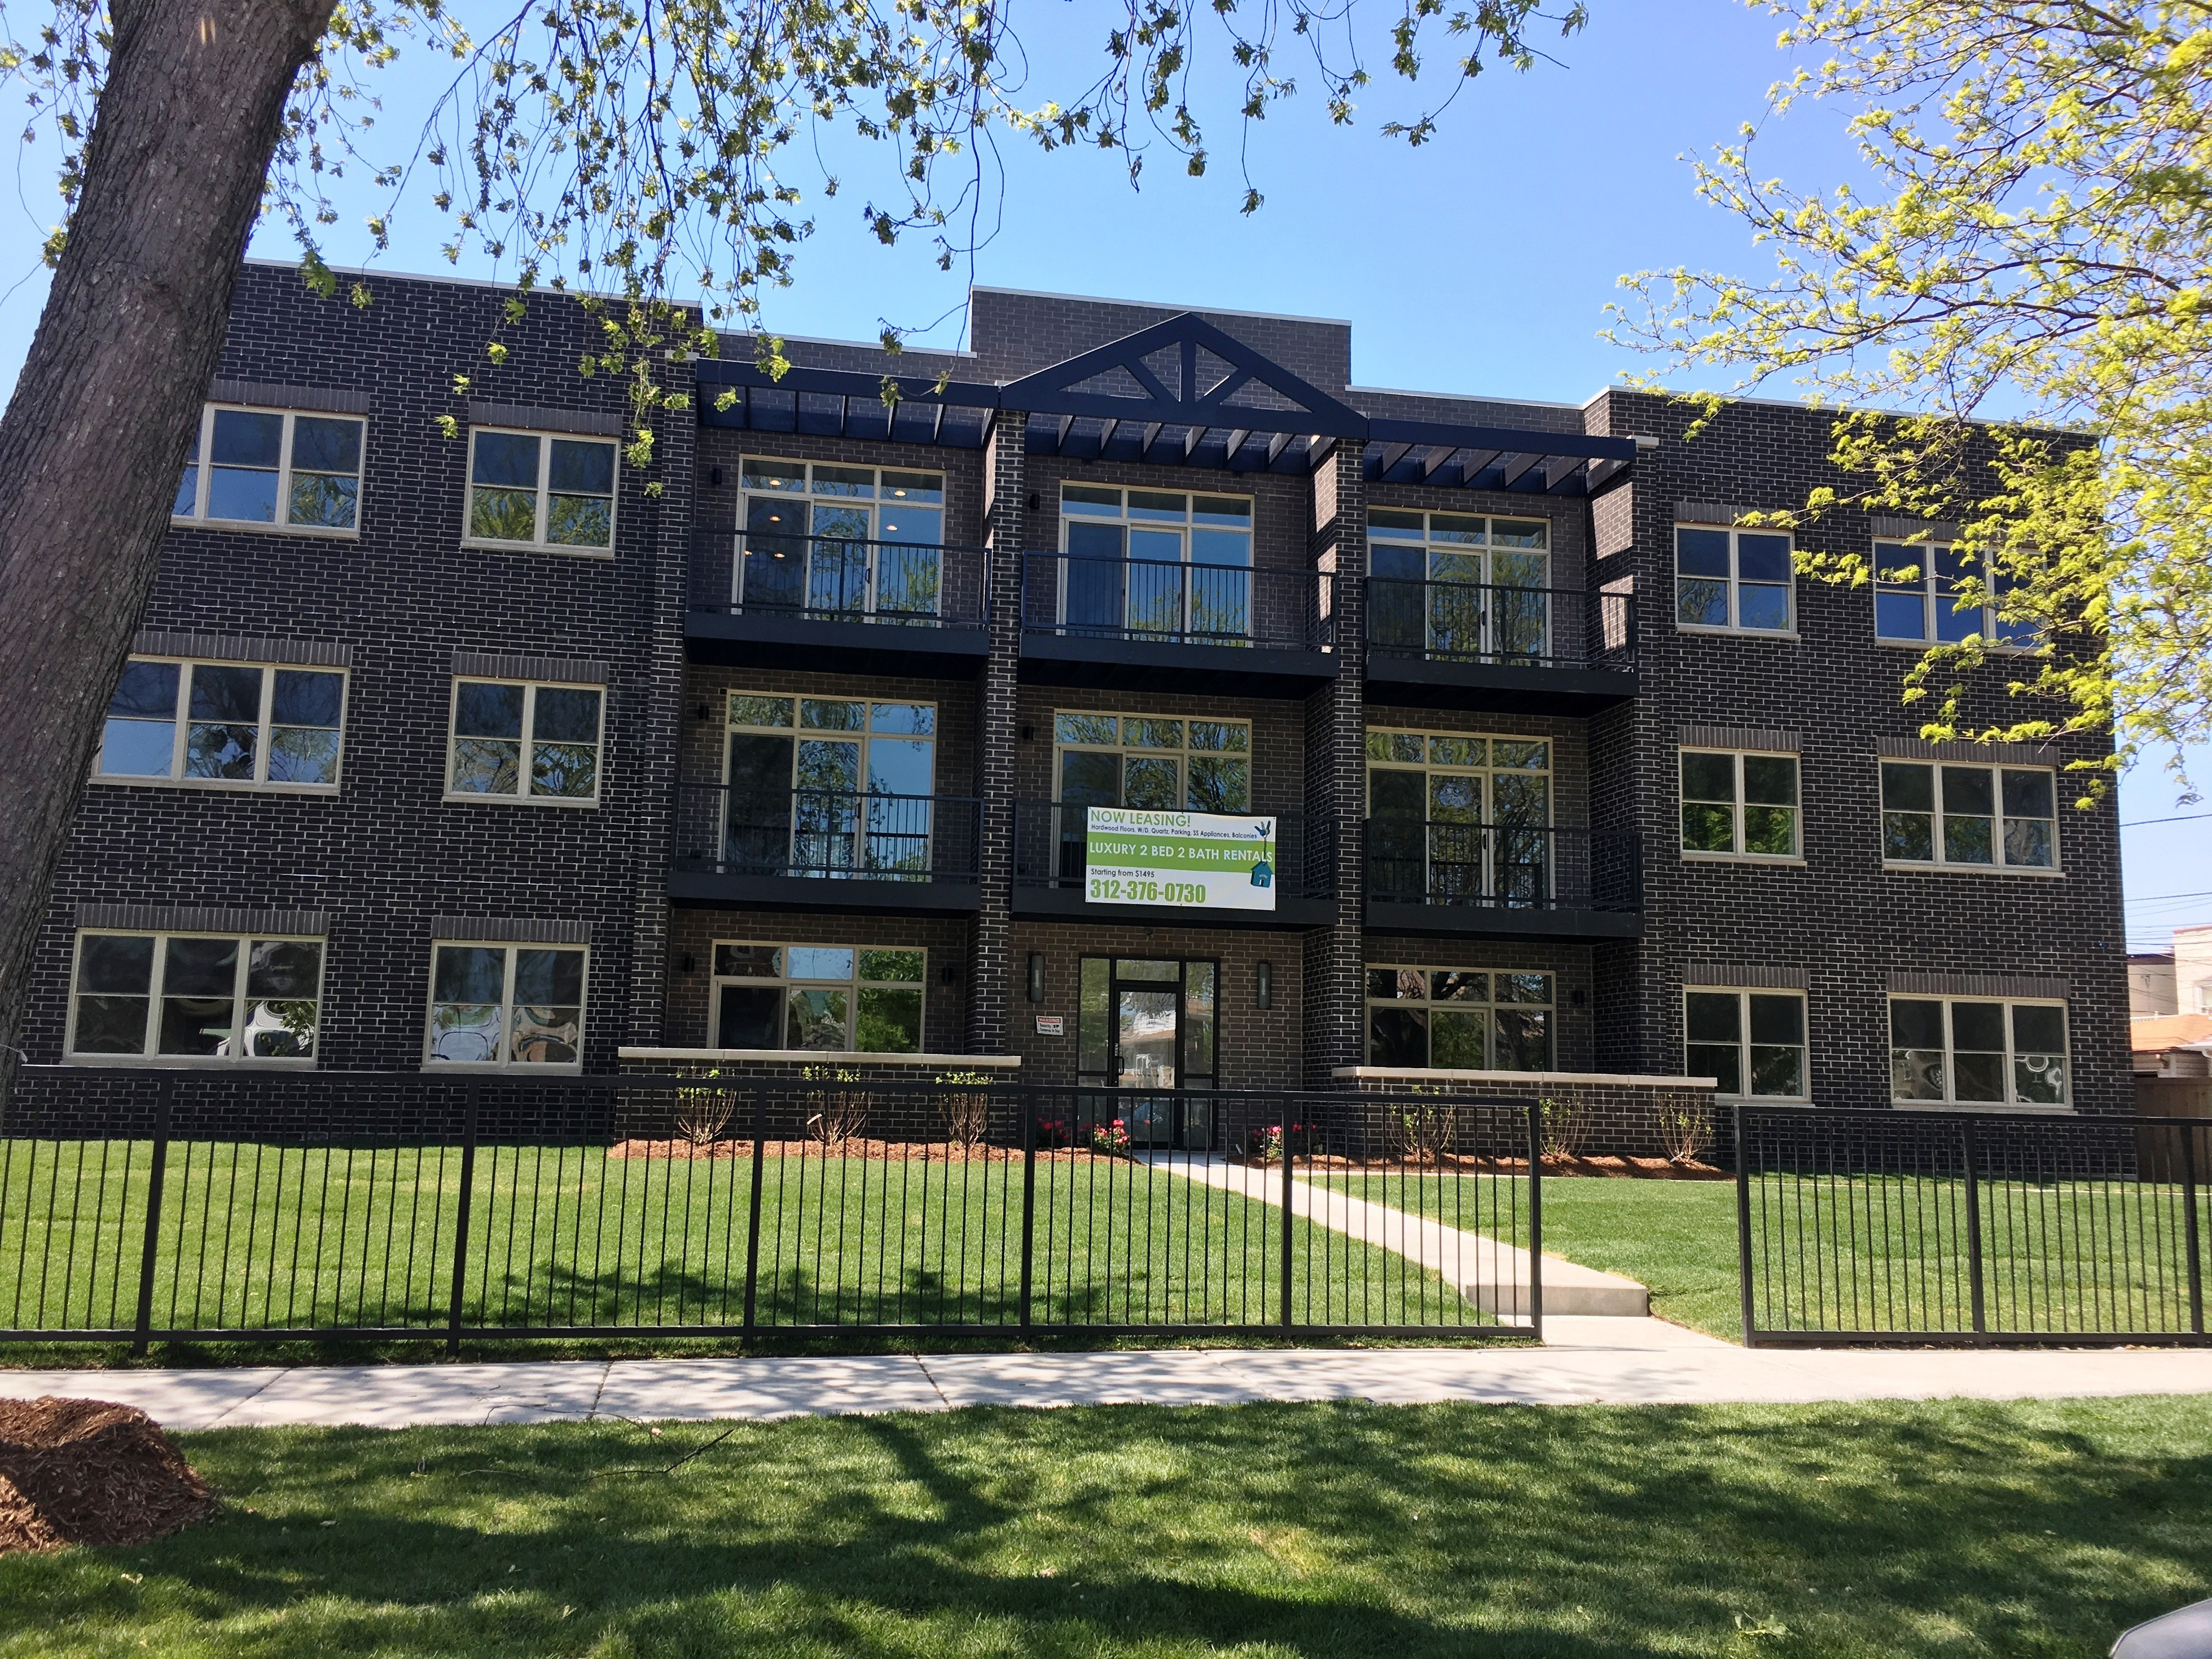 hyde apartments tower for bedroom hotpads s chicago rent at in large il pad boulevard park